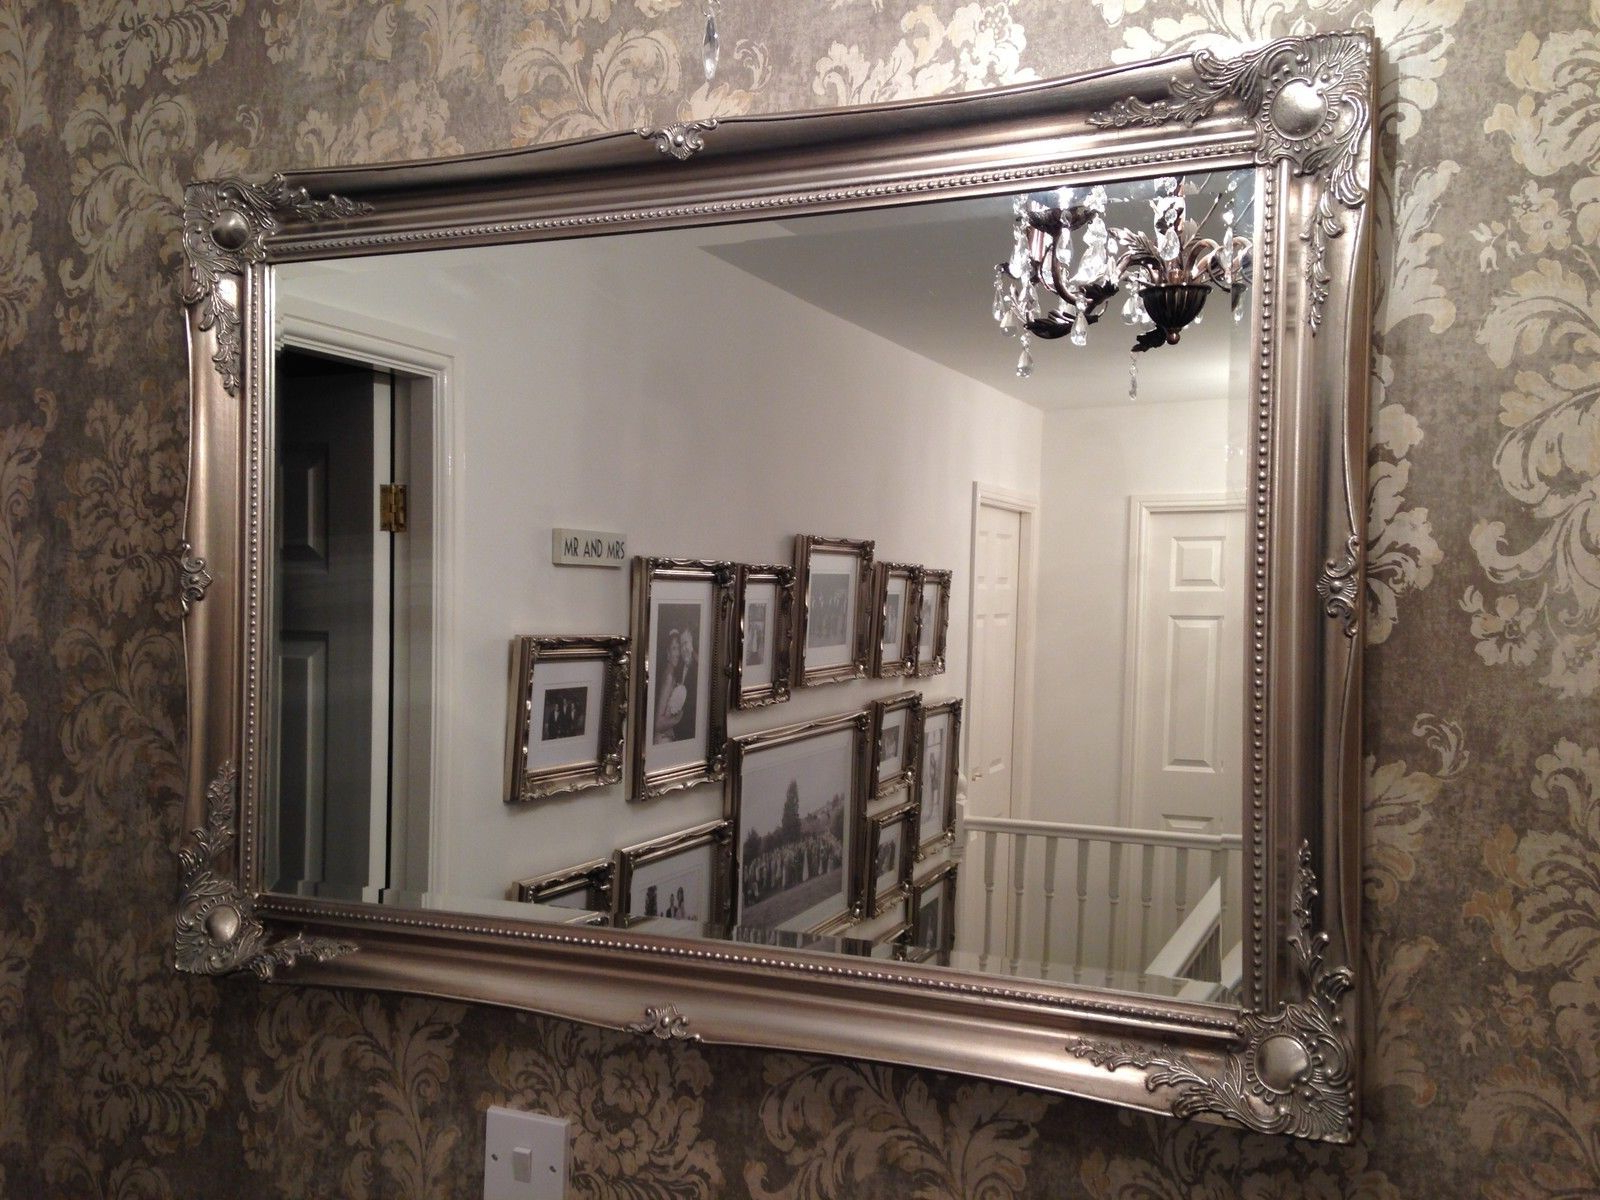 Fashionable Big Size Wall Mirrors Pertaining To Large Hair Dresser Salon Fabulous Mirrors Full Colour And Size Range (View 4 of 20)